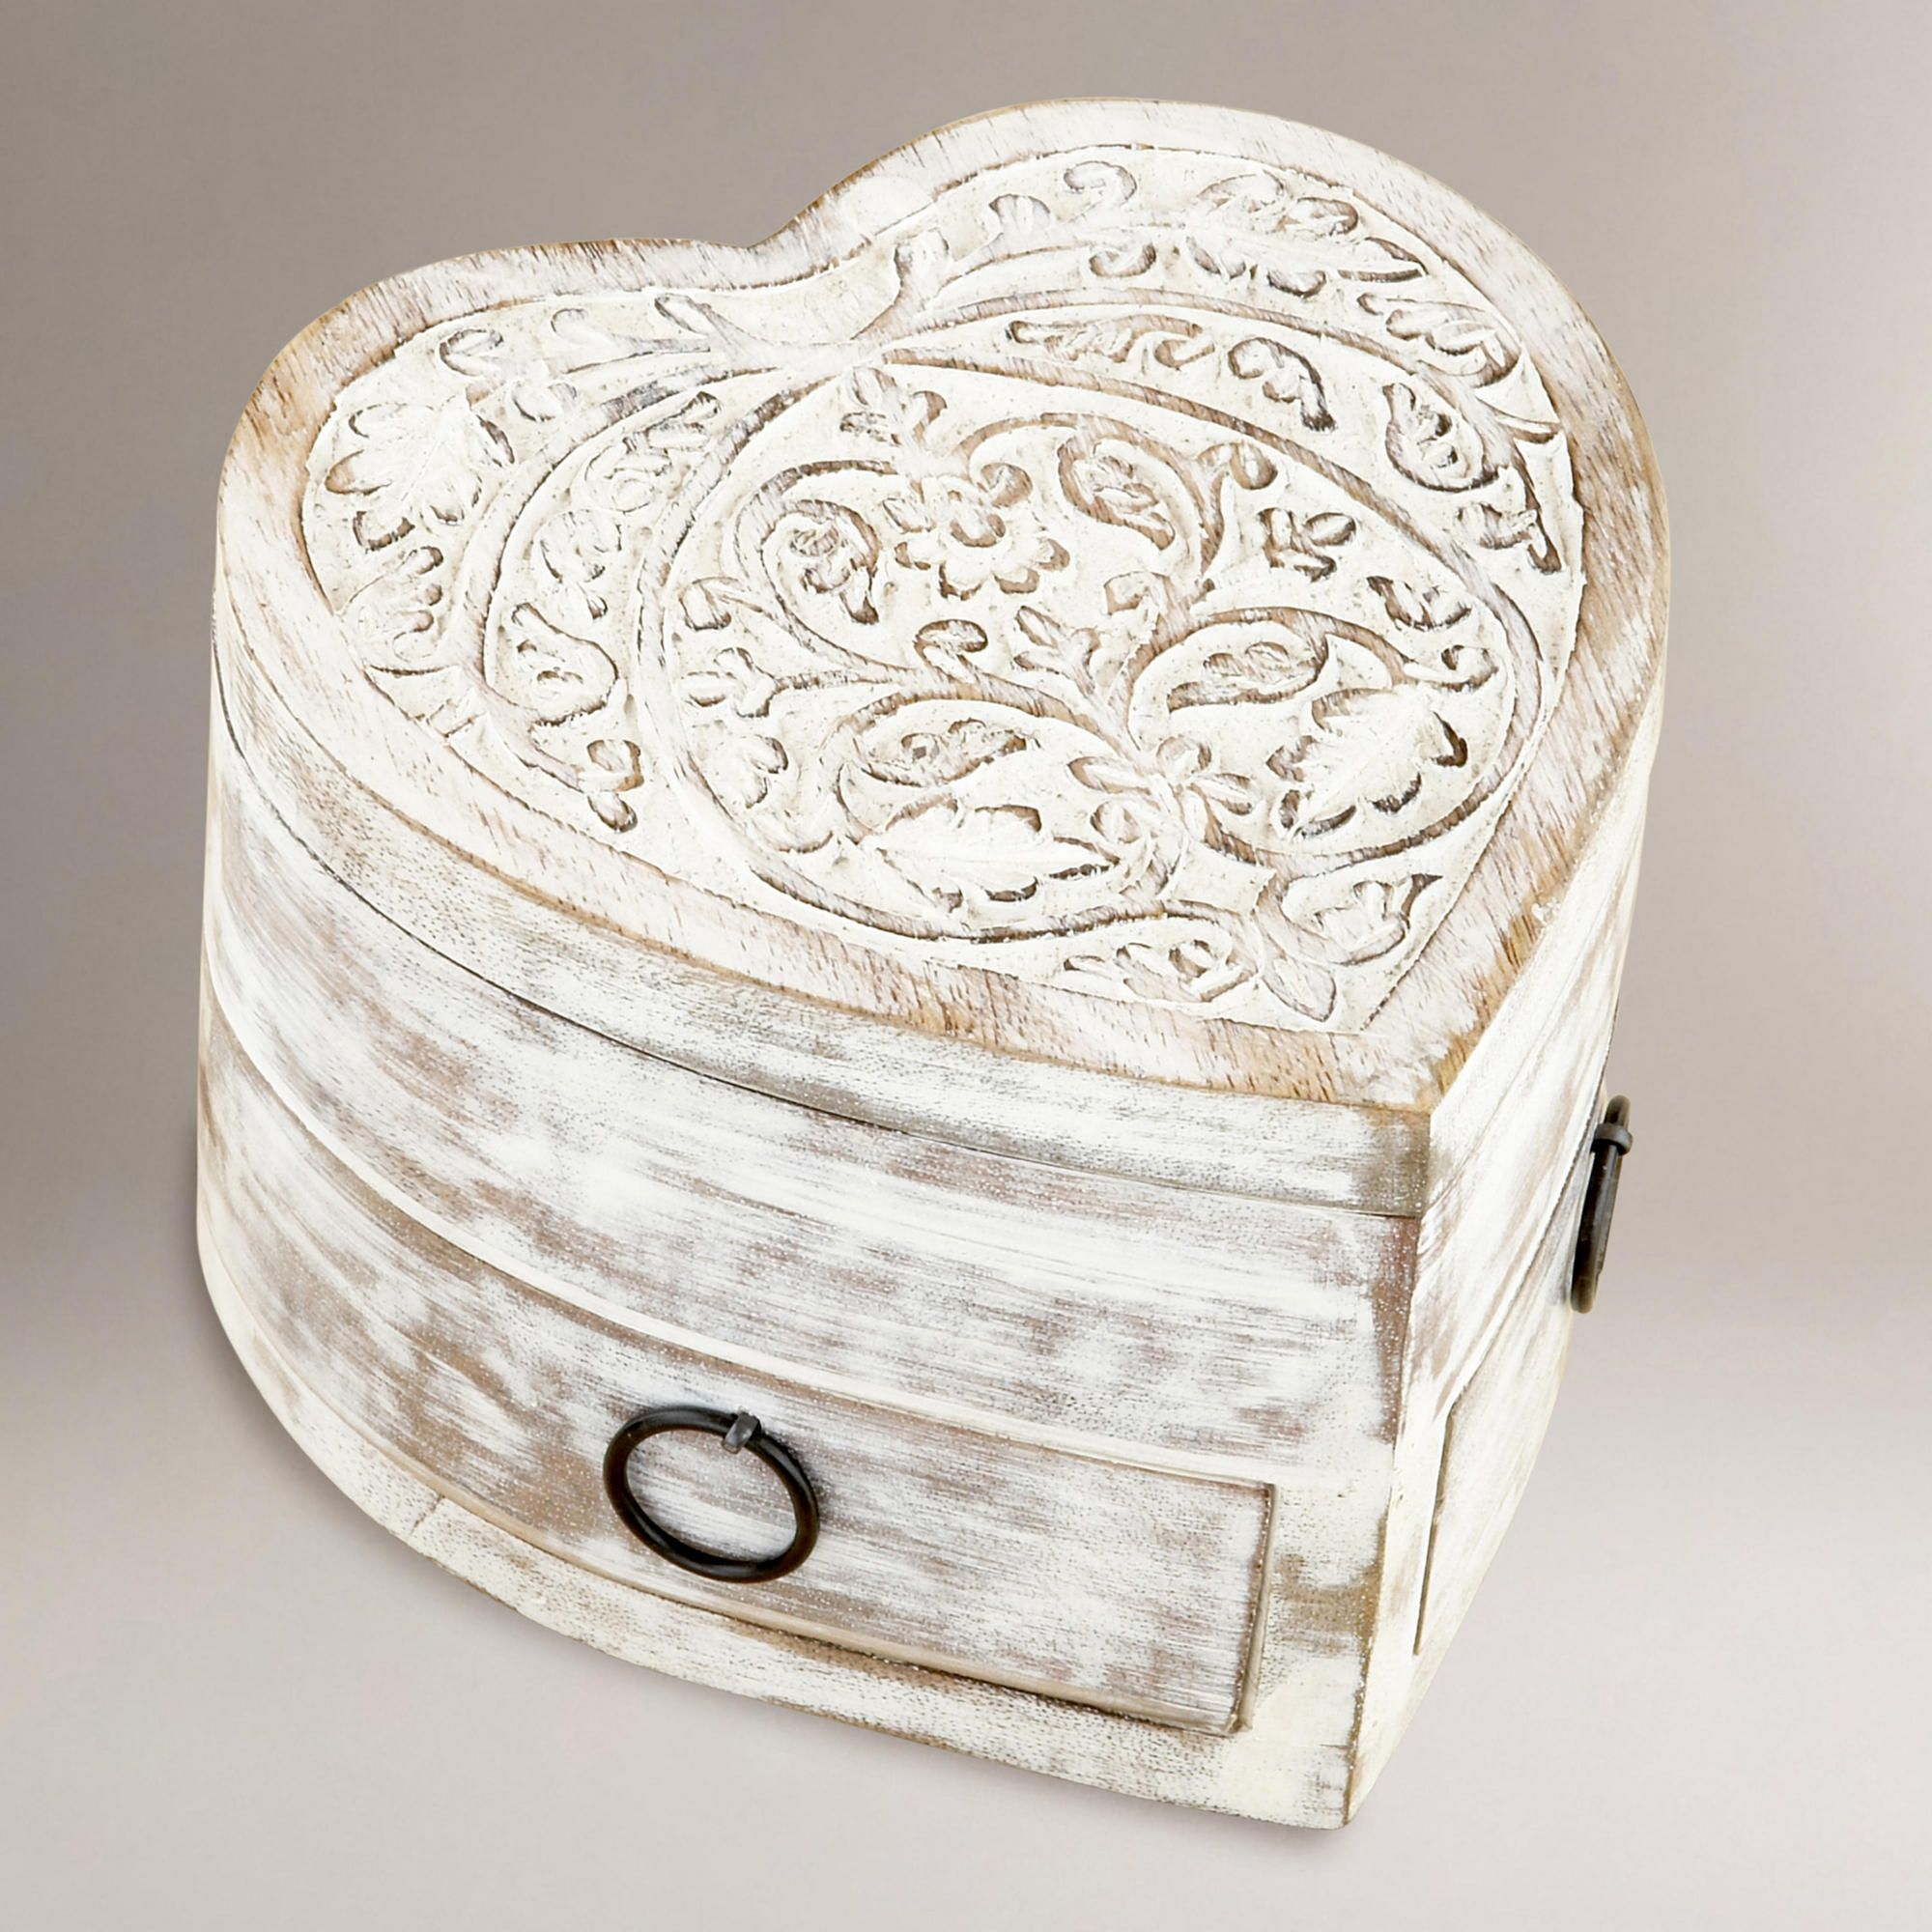 World Market Jewelry Box Alluring White Helena Heart Jewelry Box With Drawers  World Market  Hearts Review